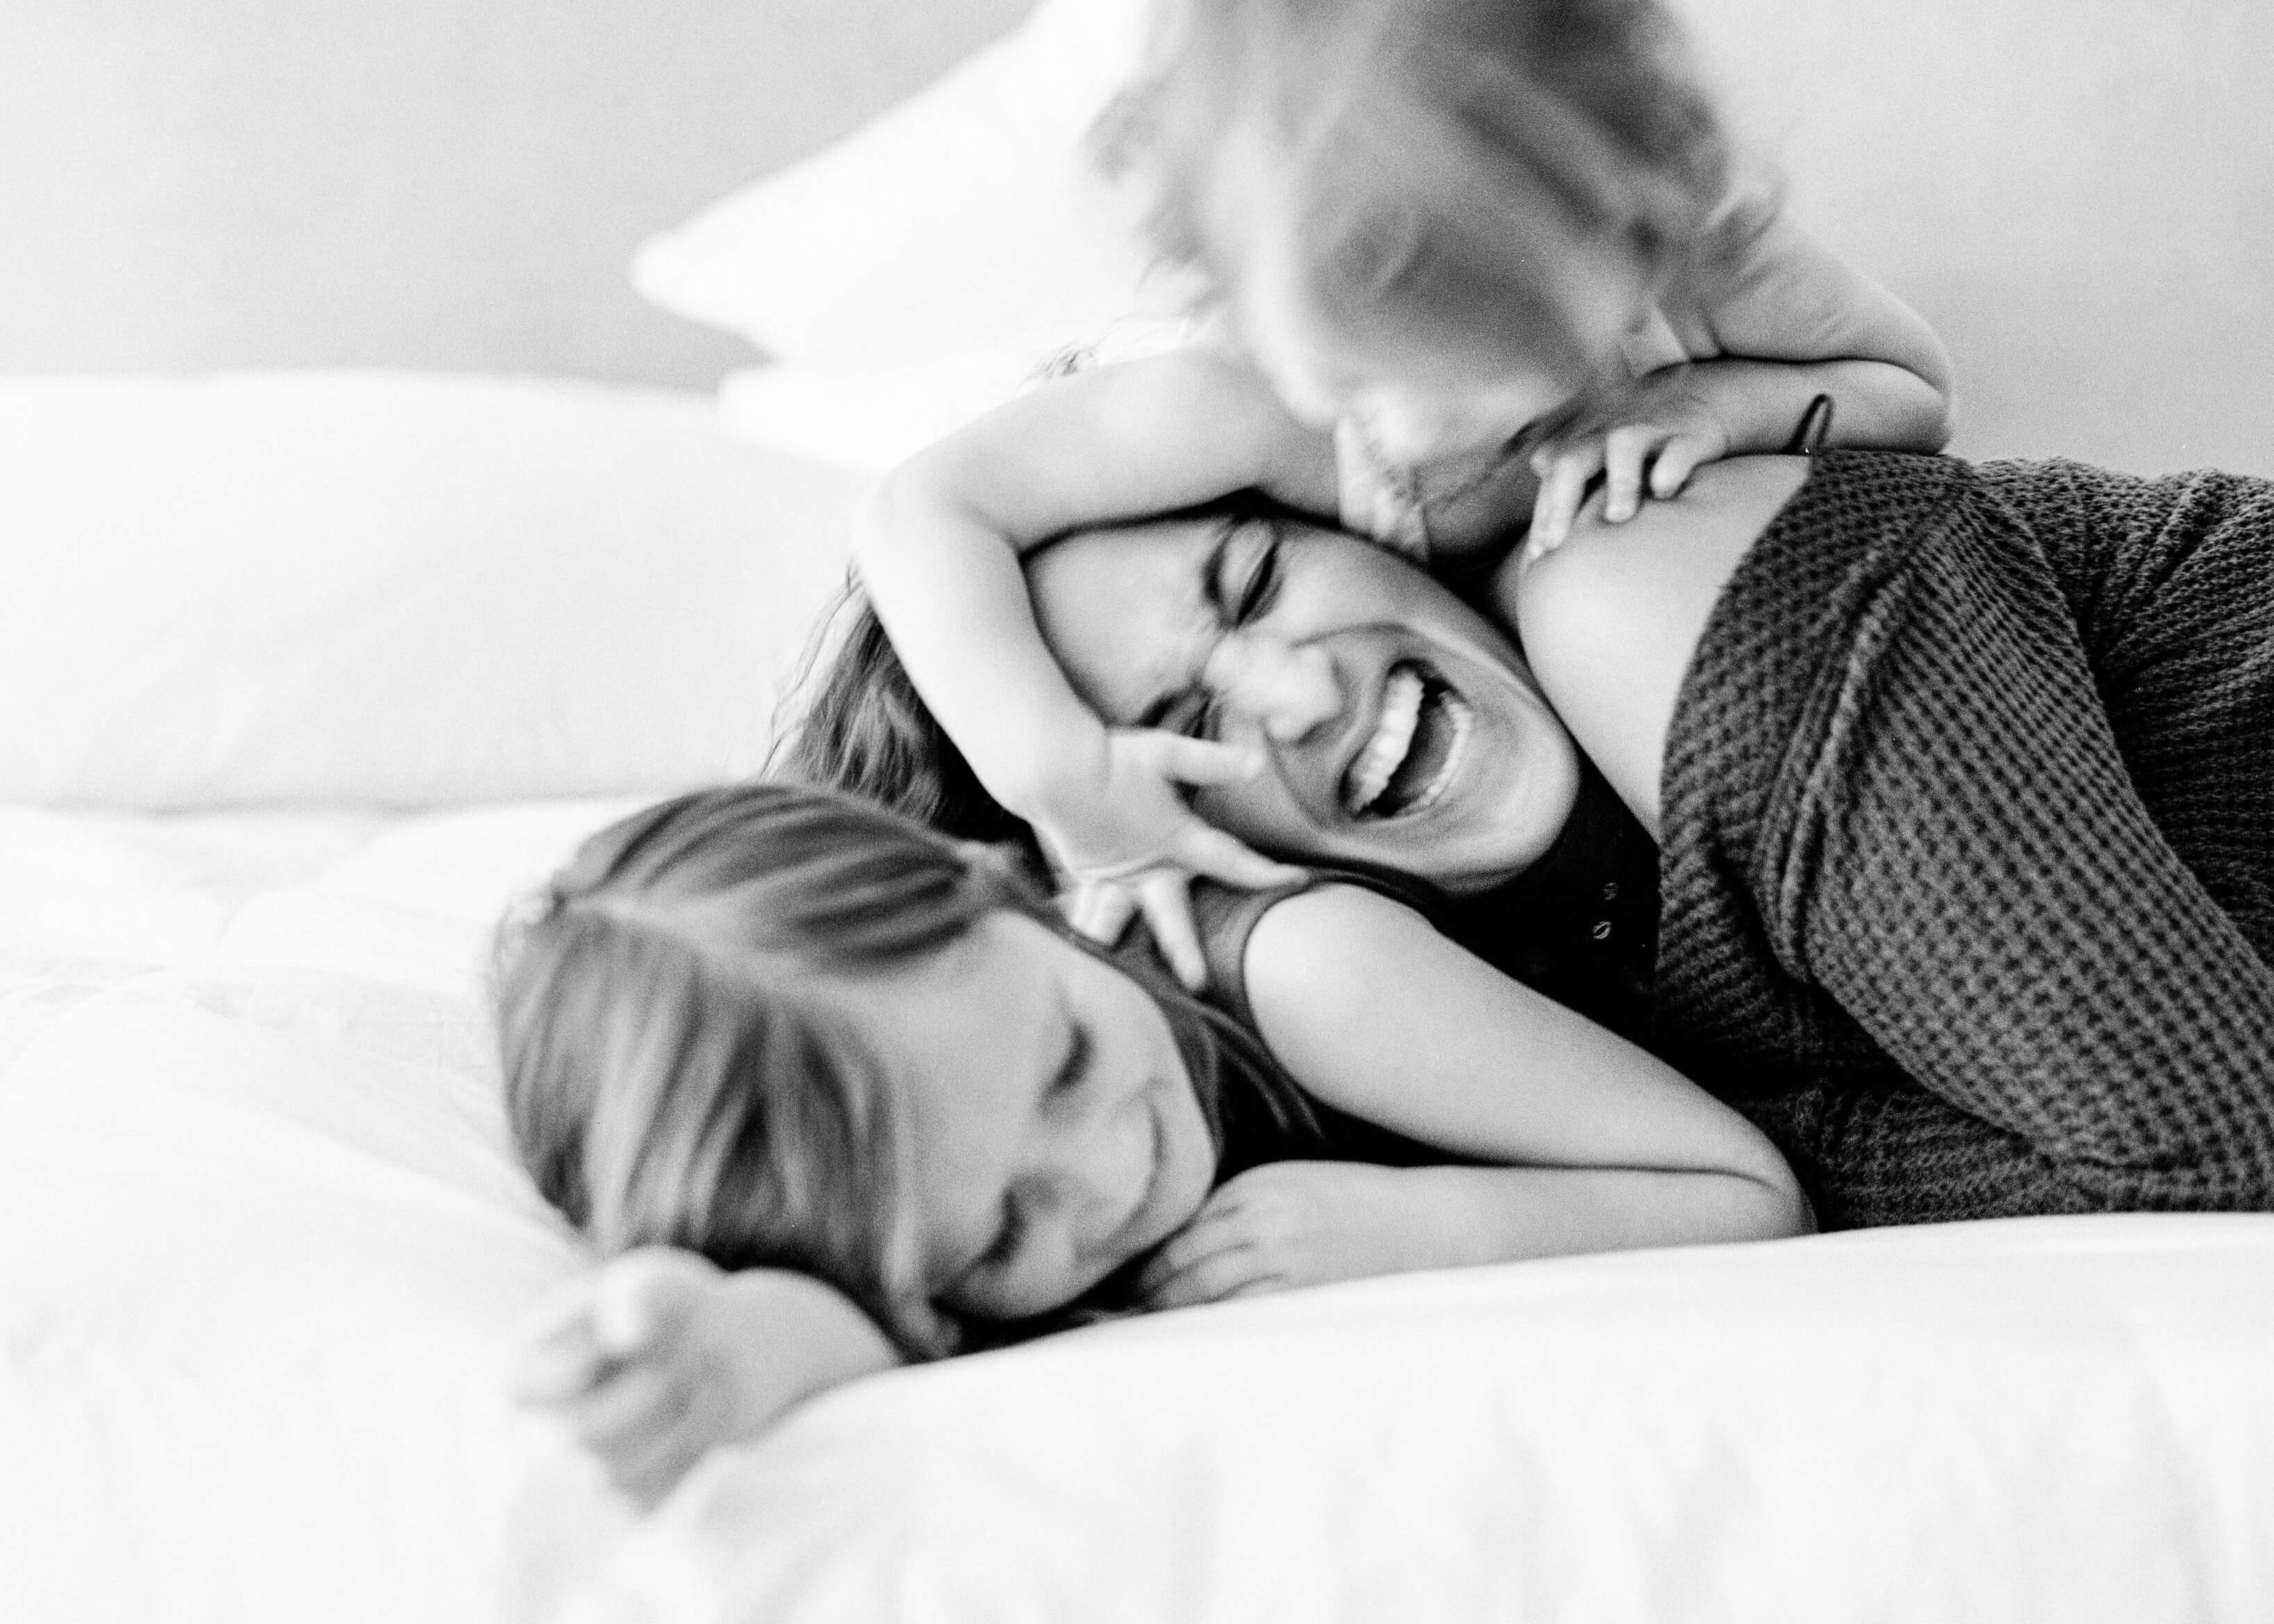 Little girl playfully jumping on top of mother and sister on bed